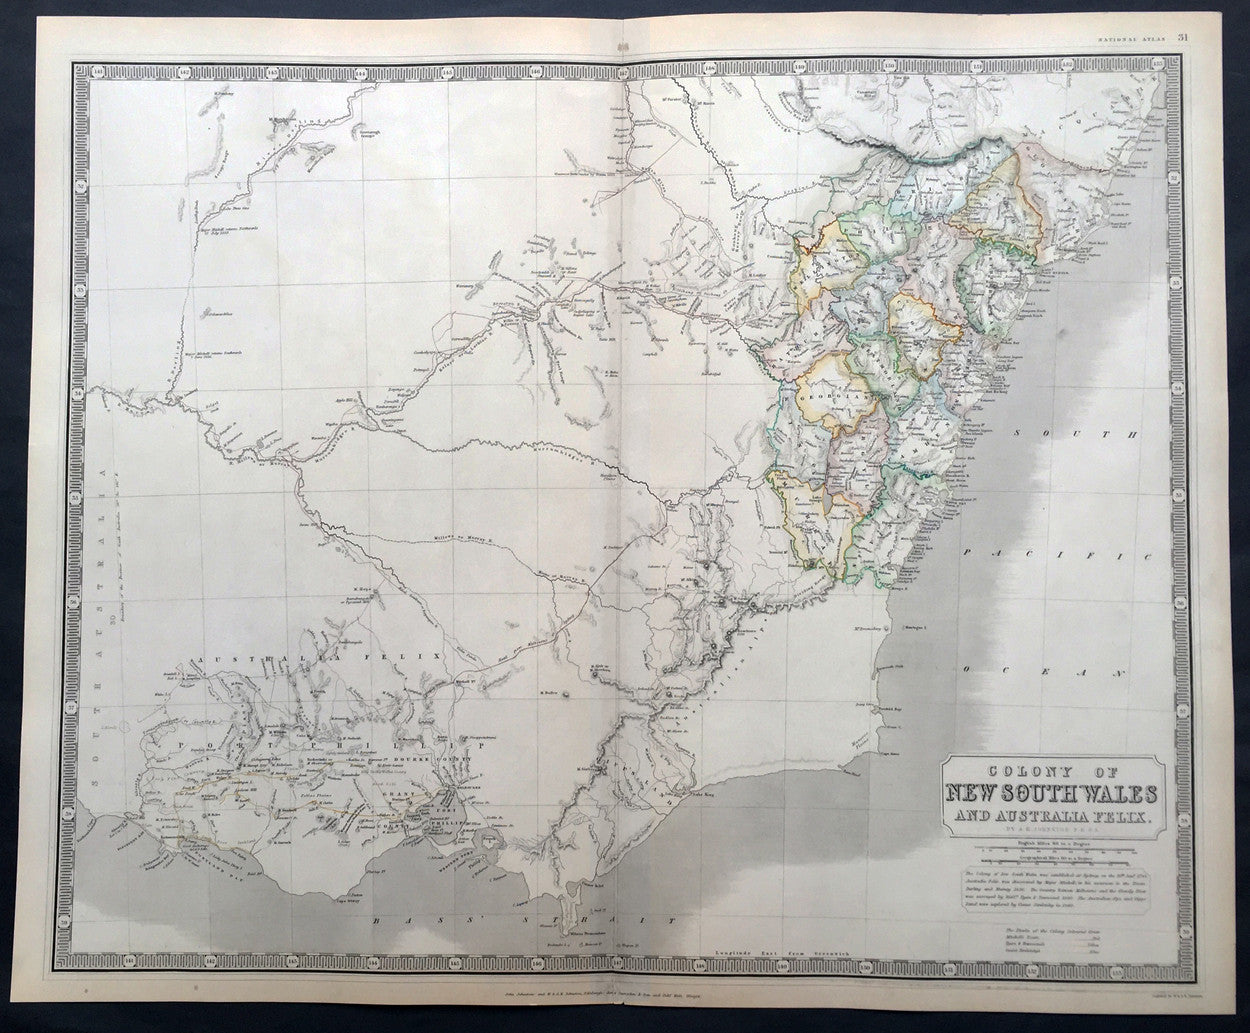 1845 johnston large antique map of new south wales victoria australia felix